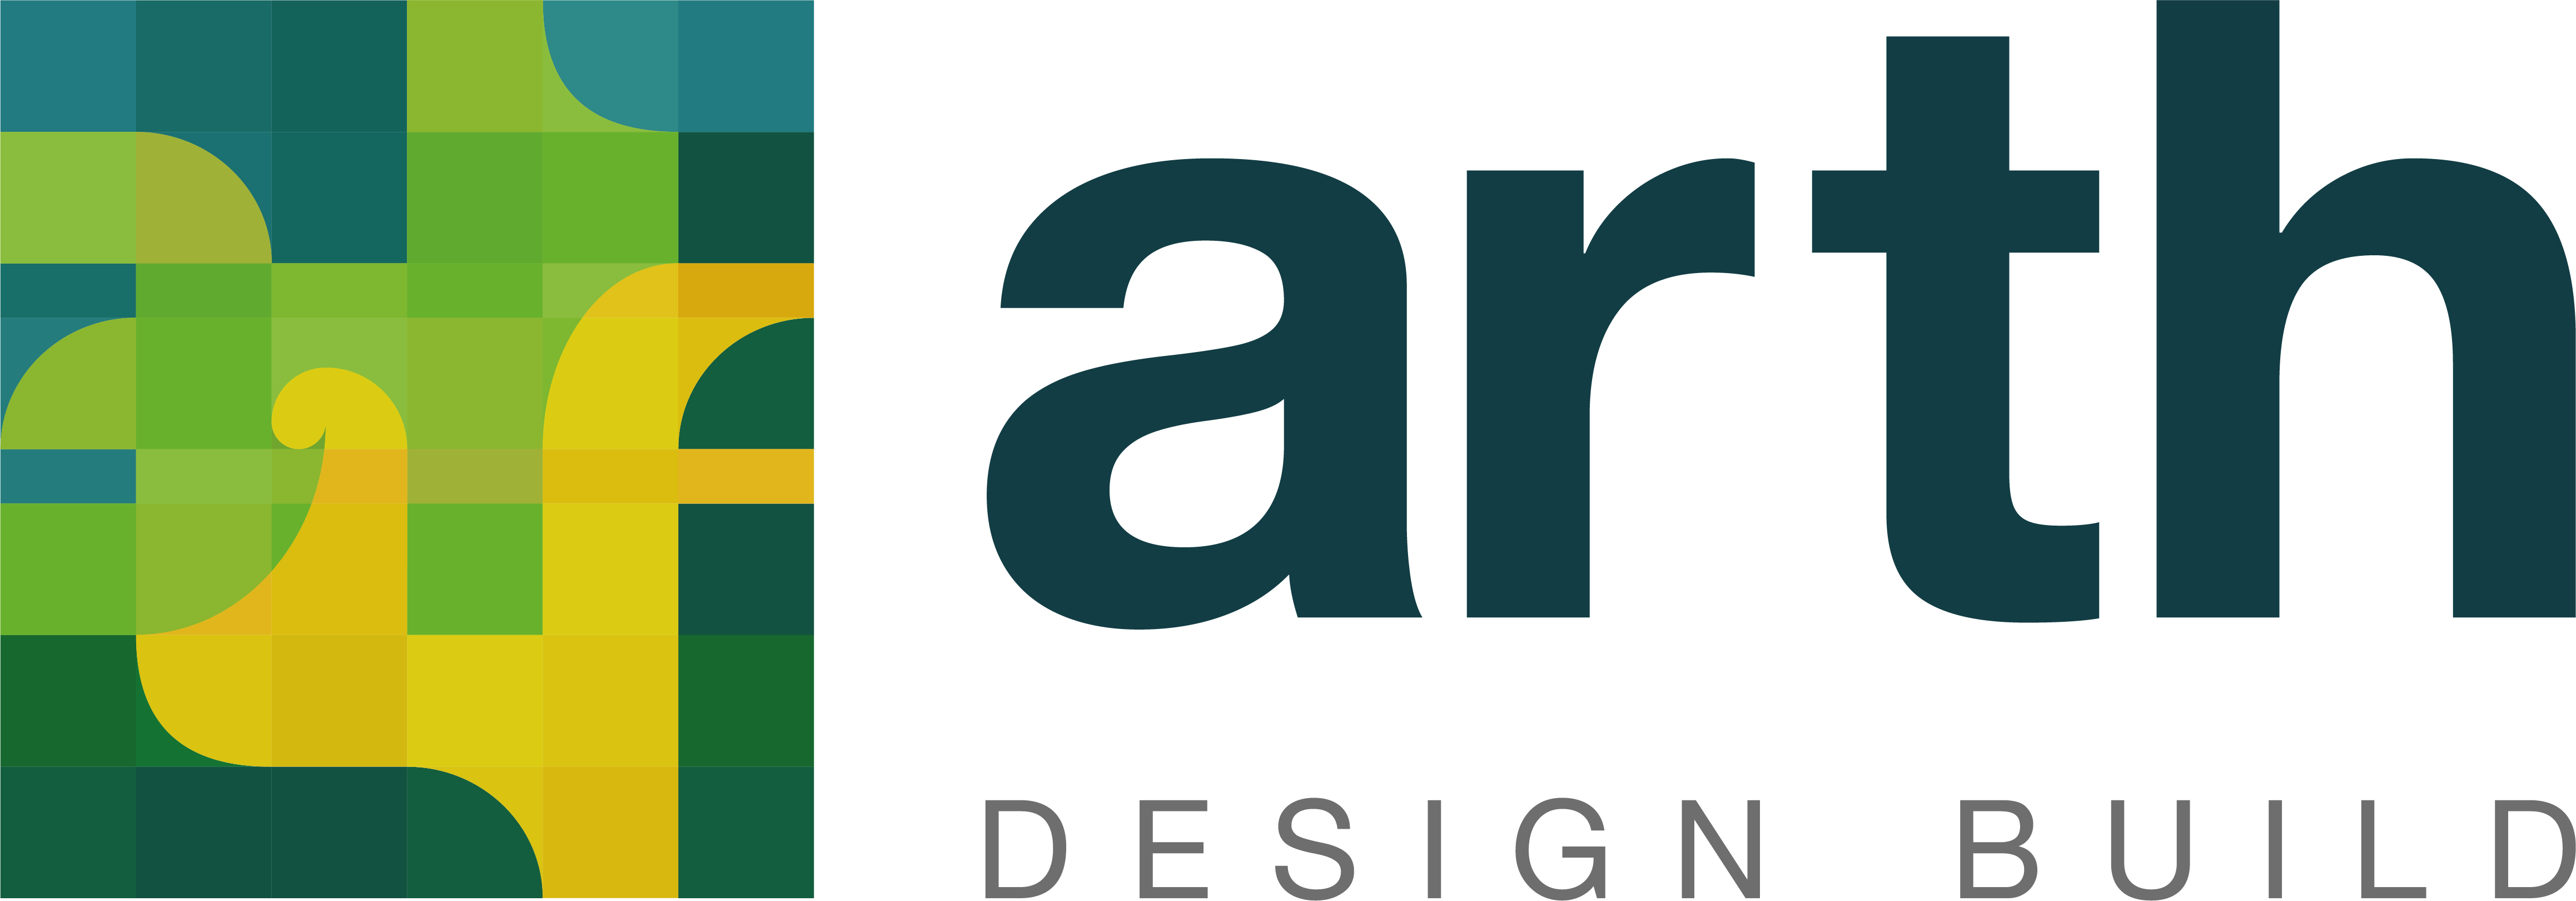 Arth_Logo_Alternate_For_large_scale_media.png